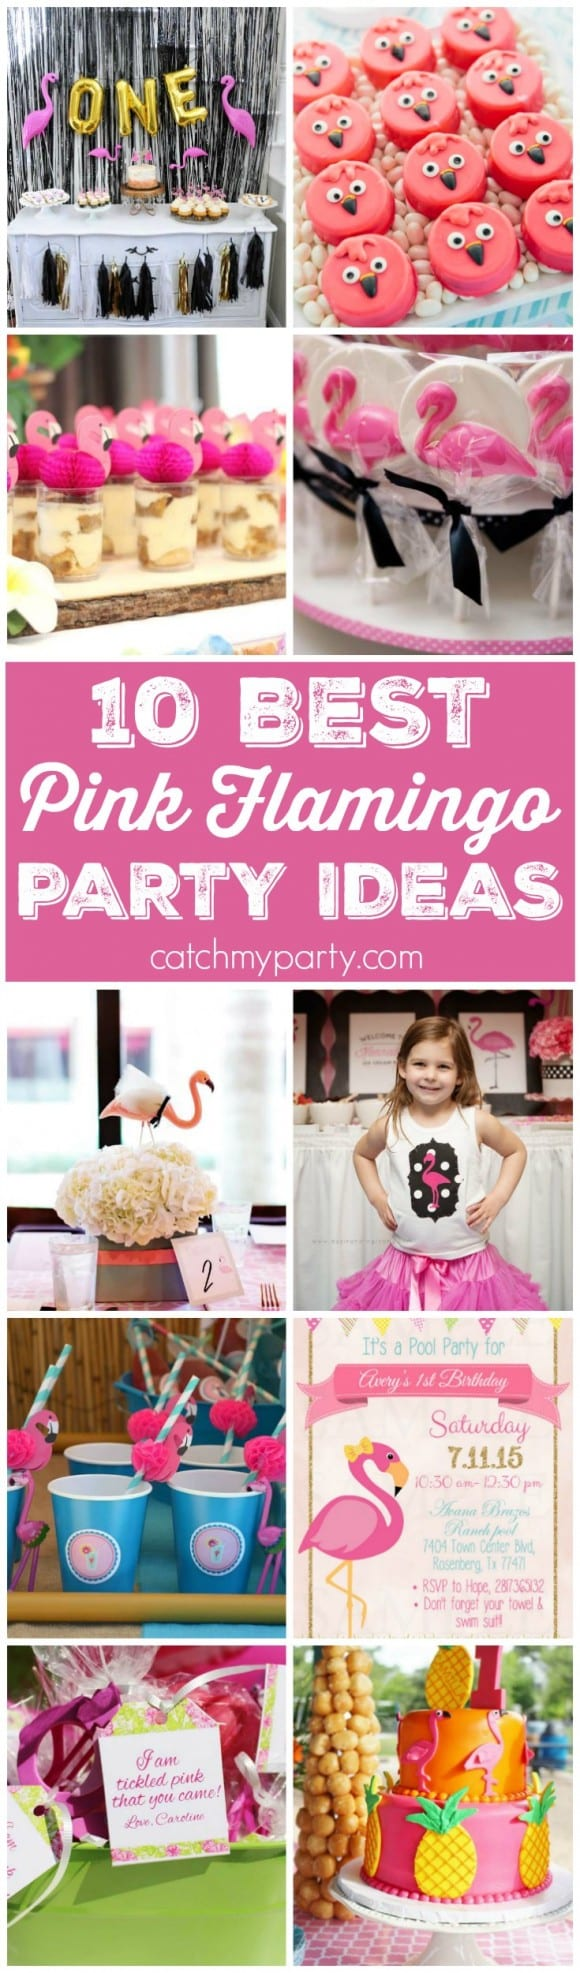 10 Best Pink Flamingo Party Ideas | Catchmyparty.com